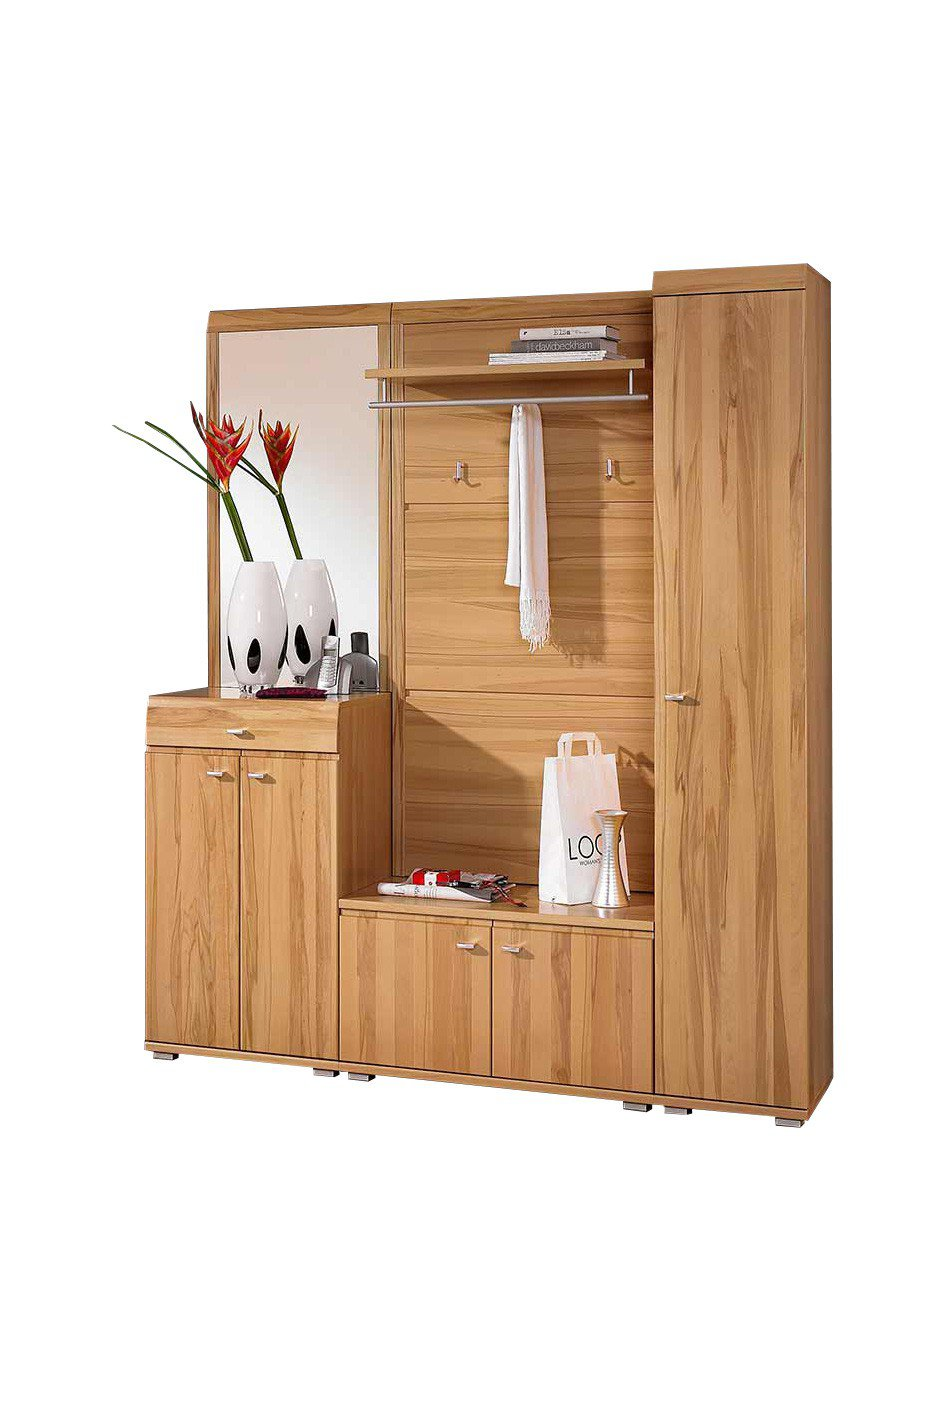 garderobe bozen 4810 leinkenjost m bel letz ihr online shop. Black Bedroom Furniture Sets. Home Design Ideas